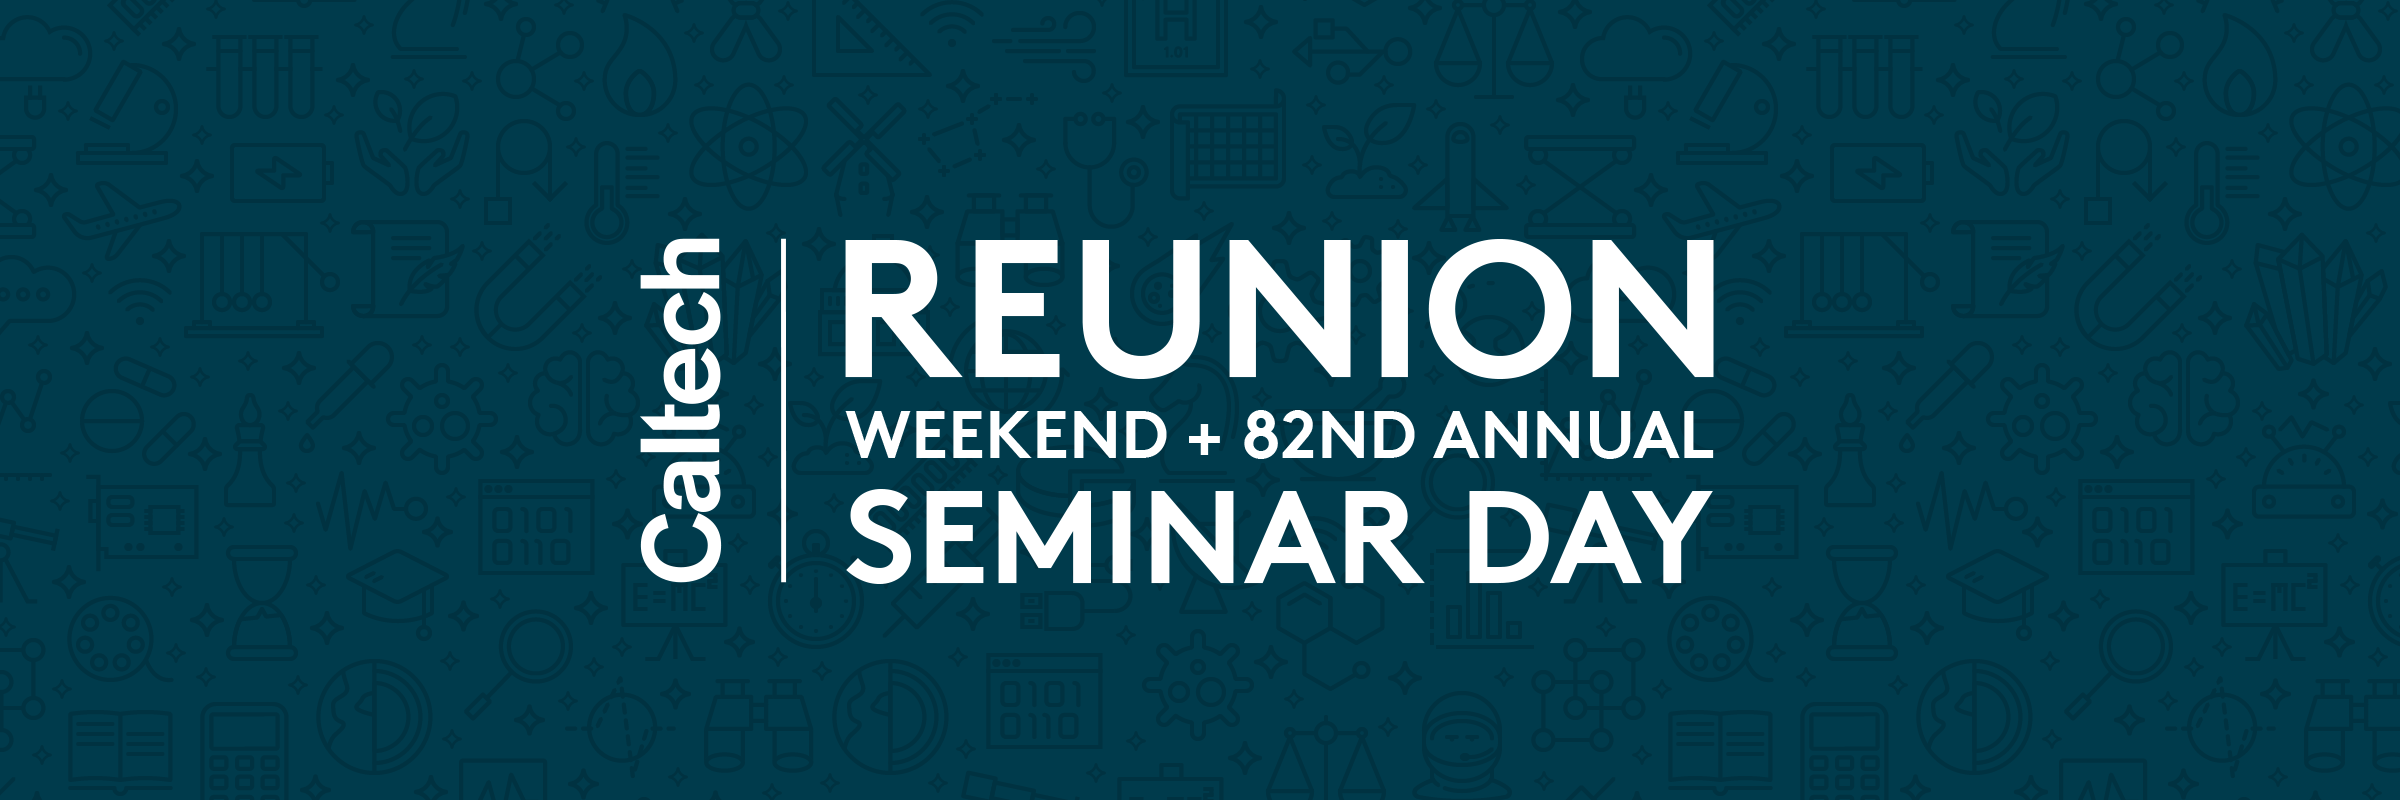 Caltech Calendar 2020 Reunion Weekend and Seminar Day 2019 — Caltech Alumni Association